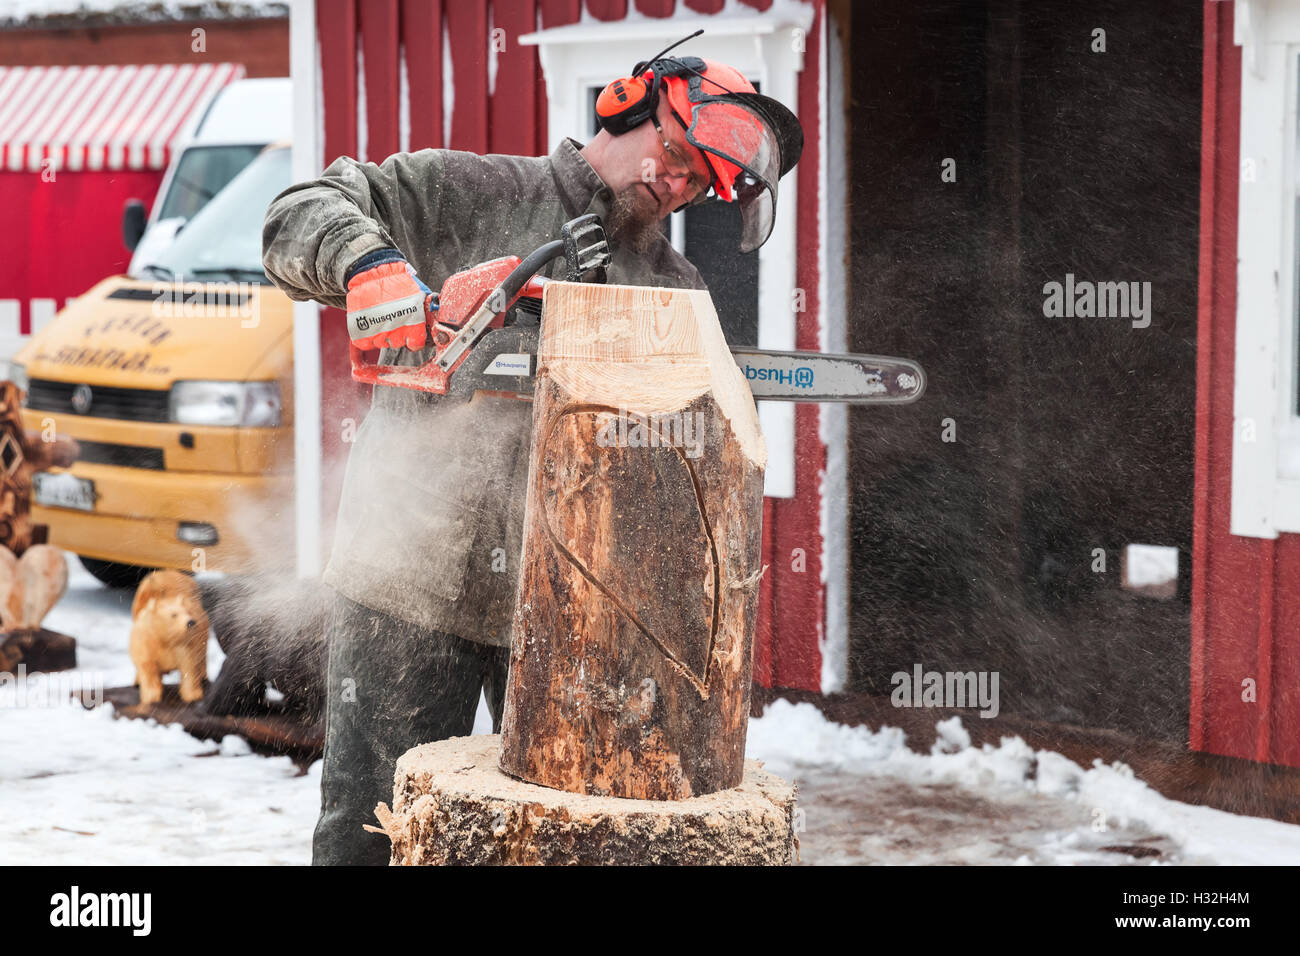 Hamina, Finland - December 13, 2014: Master sculptor with a chainsaw produces wooden bird sculpture - Stock Image